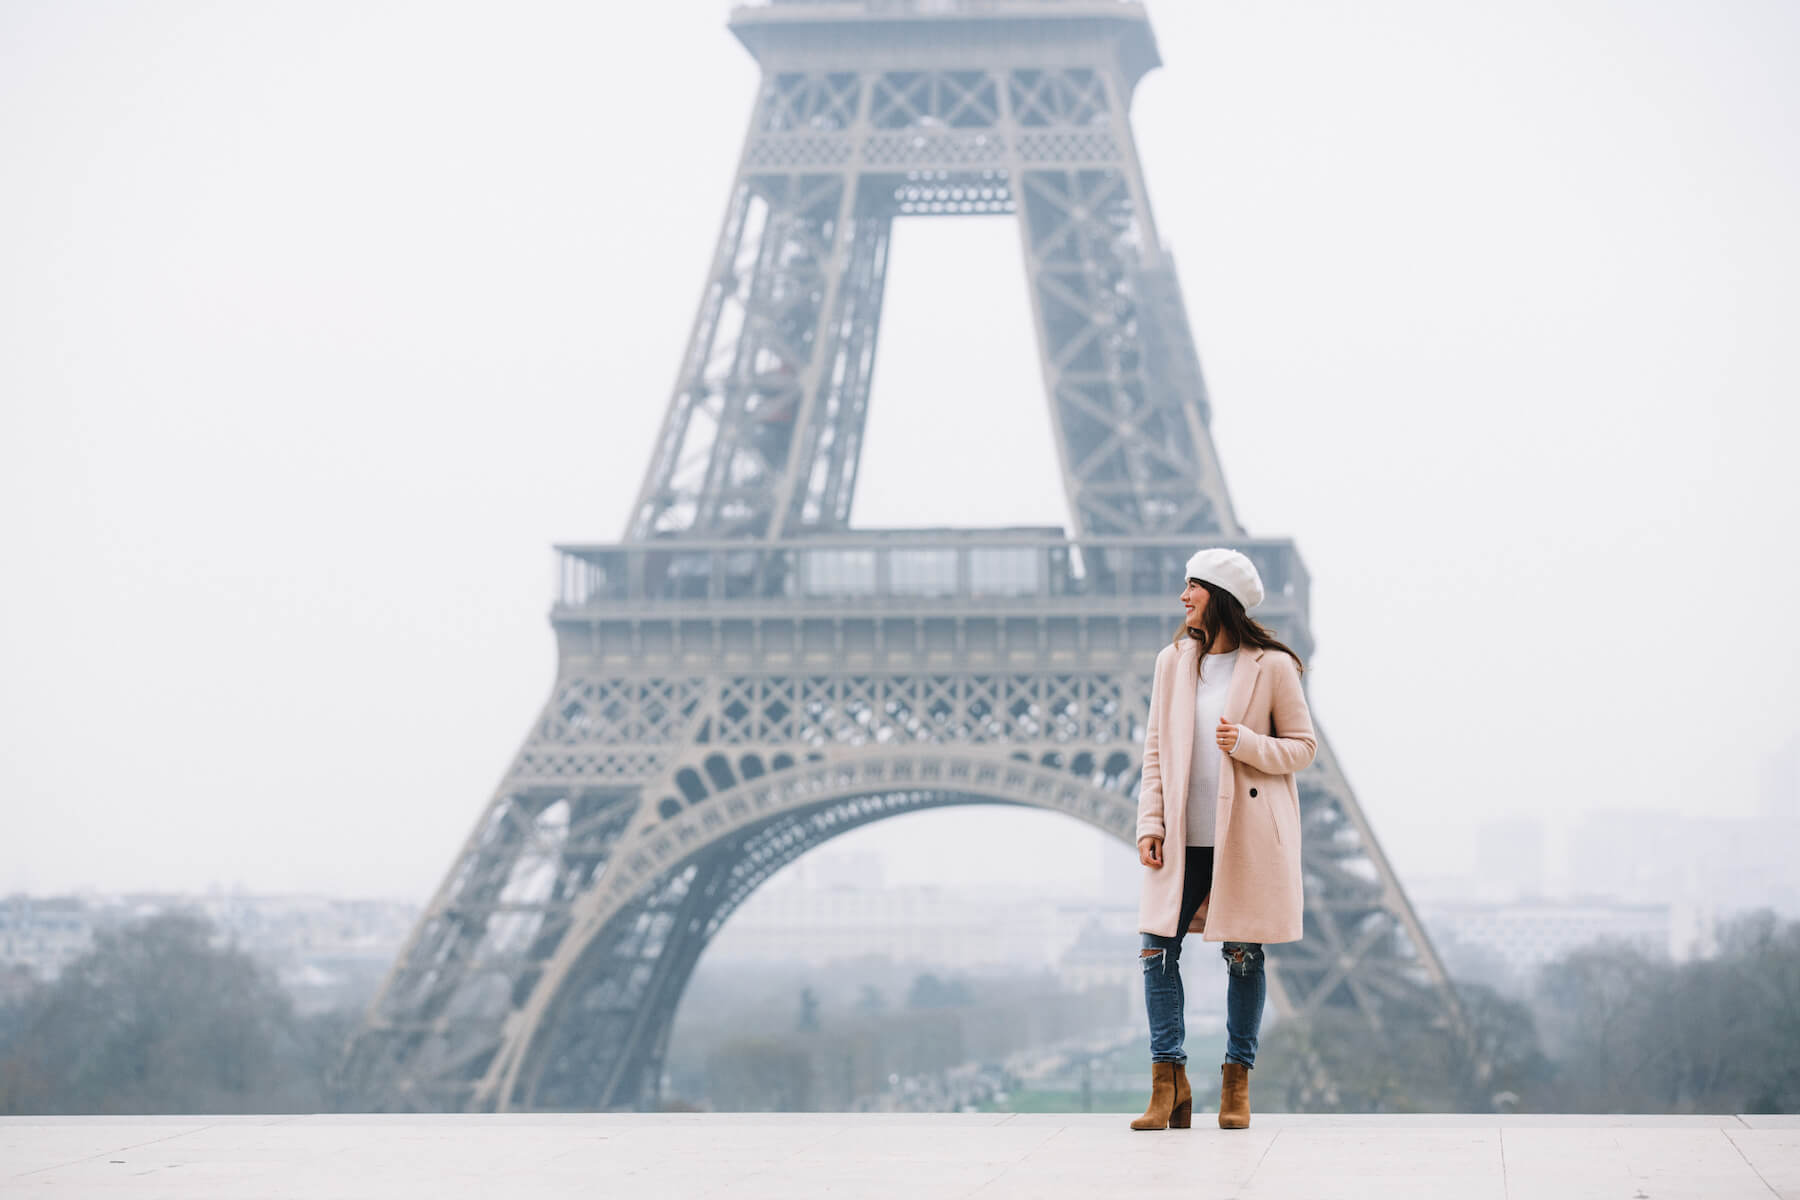 Woman smiling with the Eiffel Tower in the background on a solo photo shoot in Paris, France